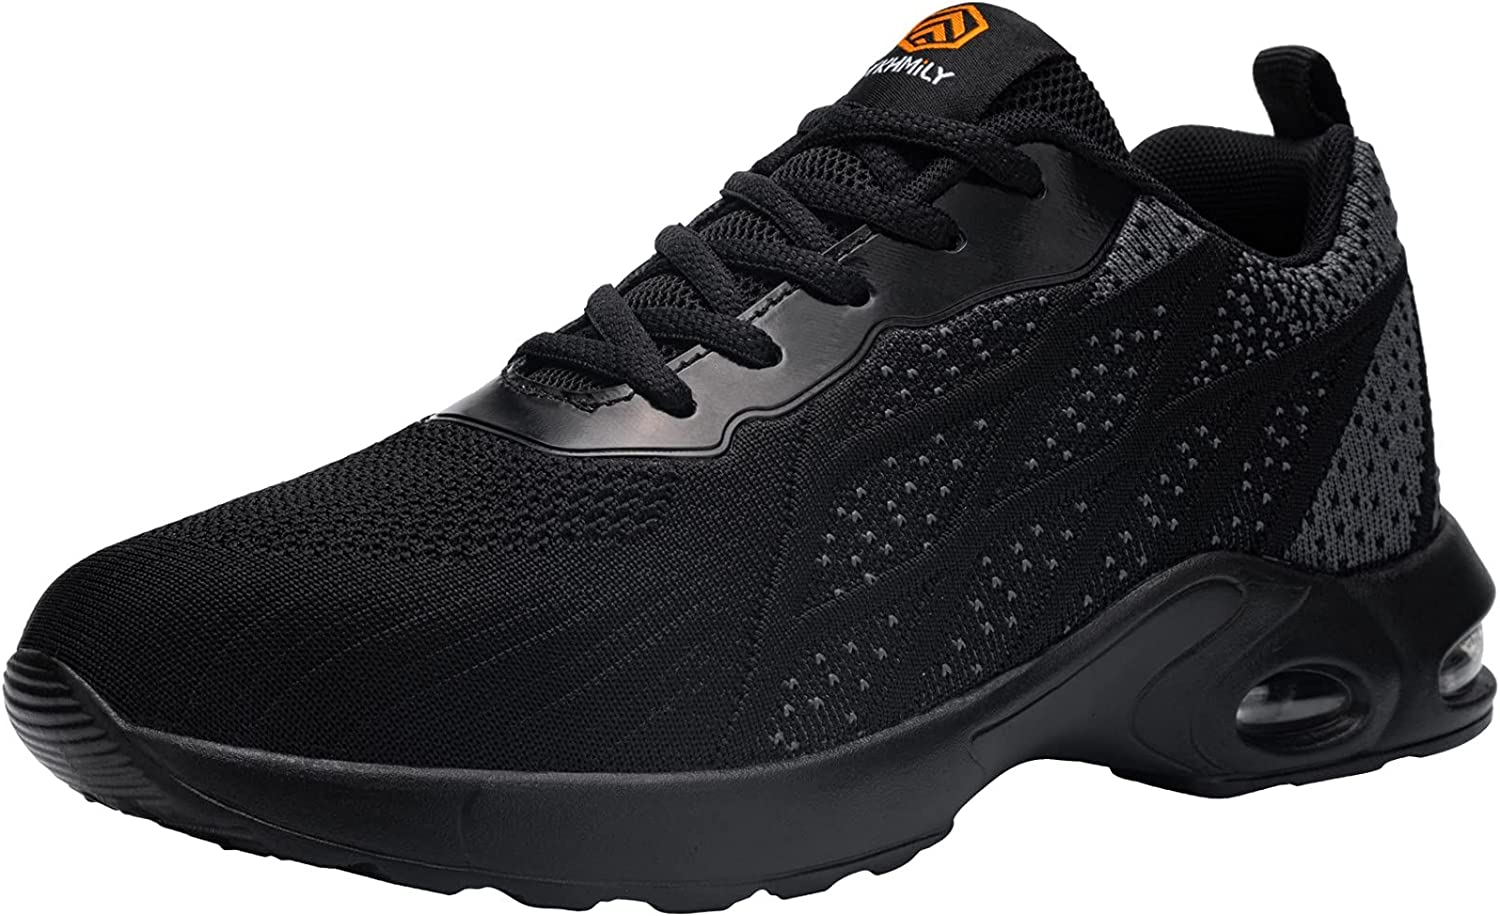 FENLERN Steel Toe Shoes for Men Safety Air Cushion Shoes Water Resistant Lightweight Sneakers Slip Resistant Safety Toe Shoes Indestructible Work Shoes